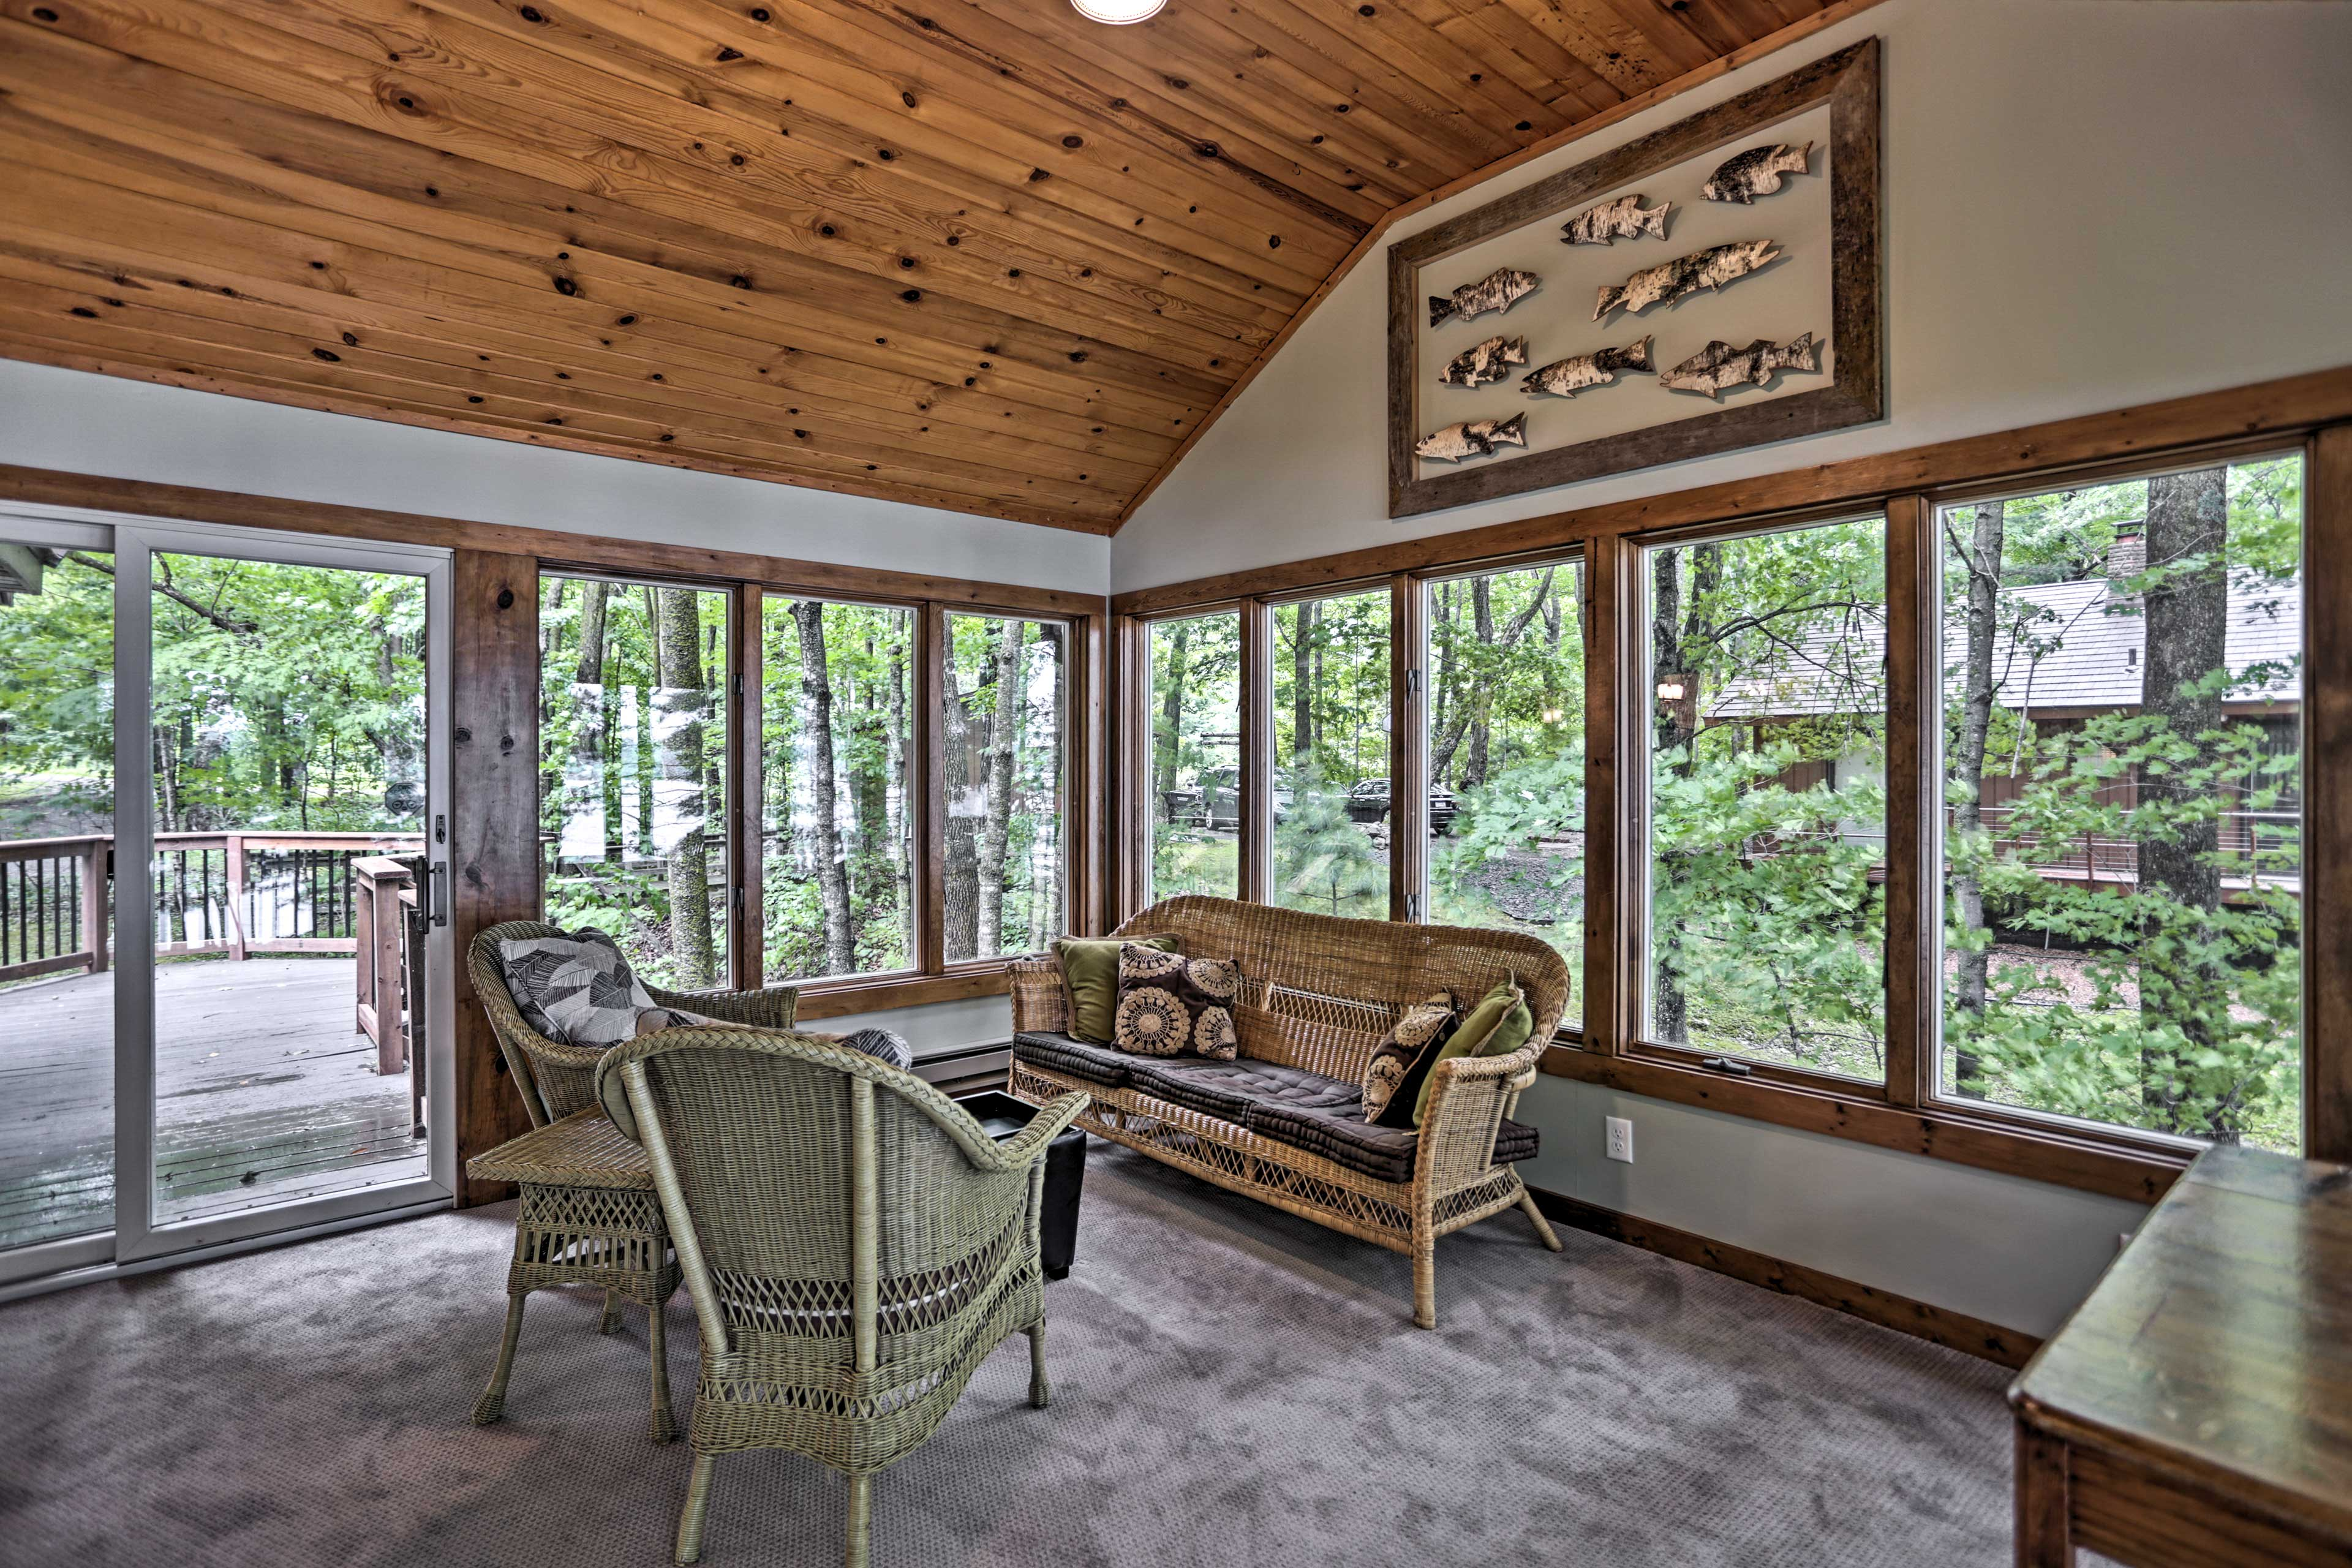 Wall-to-wall windows in the sun room provide views of the woods and lake.